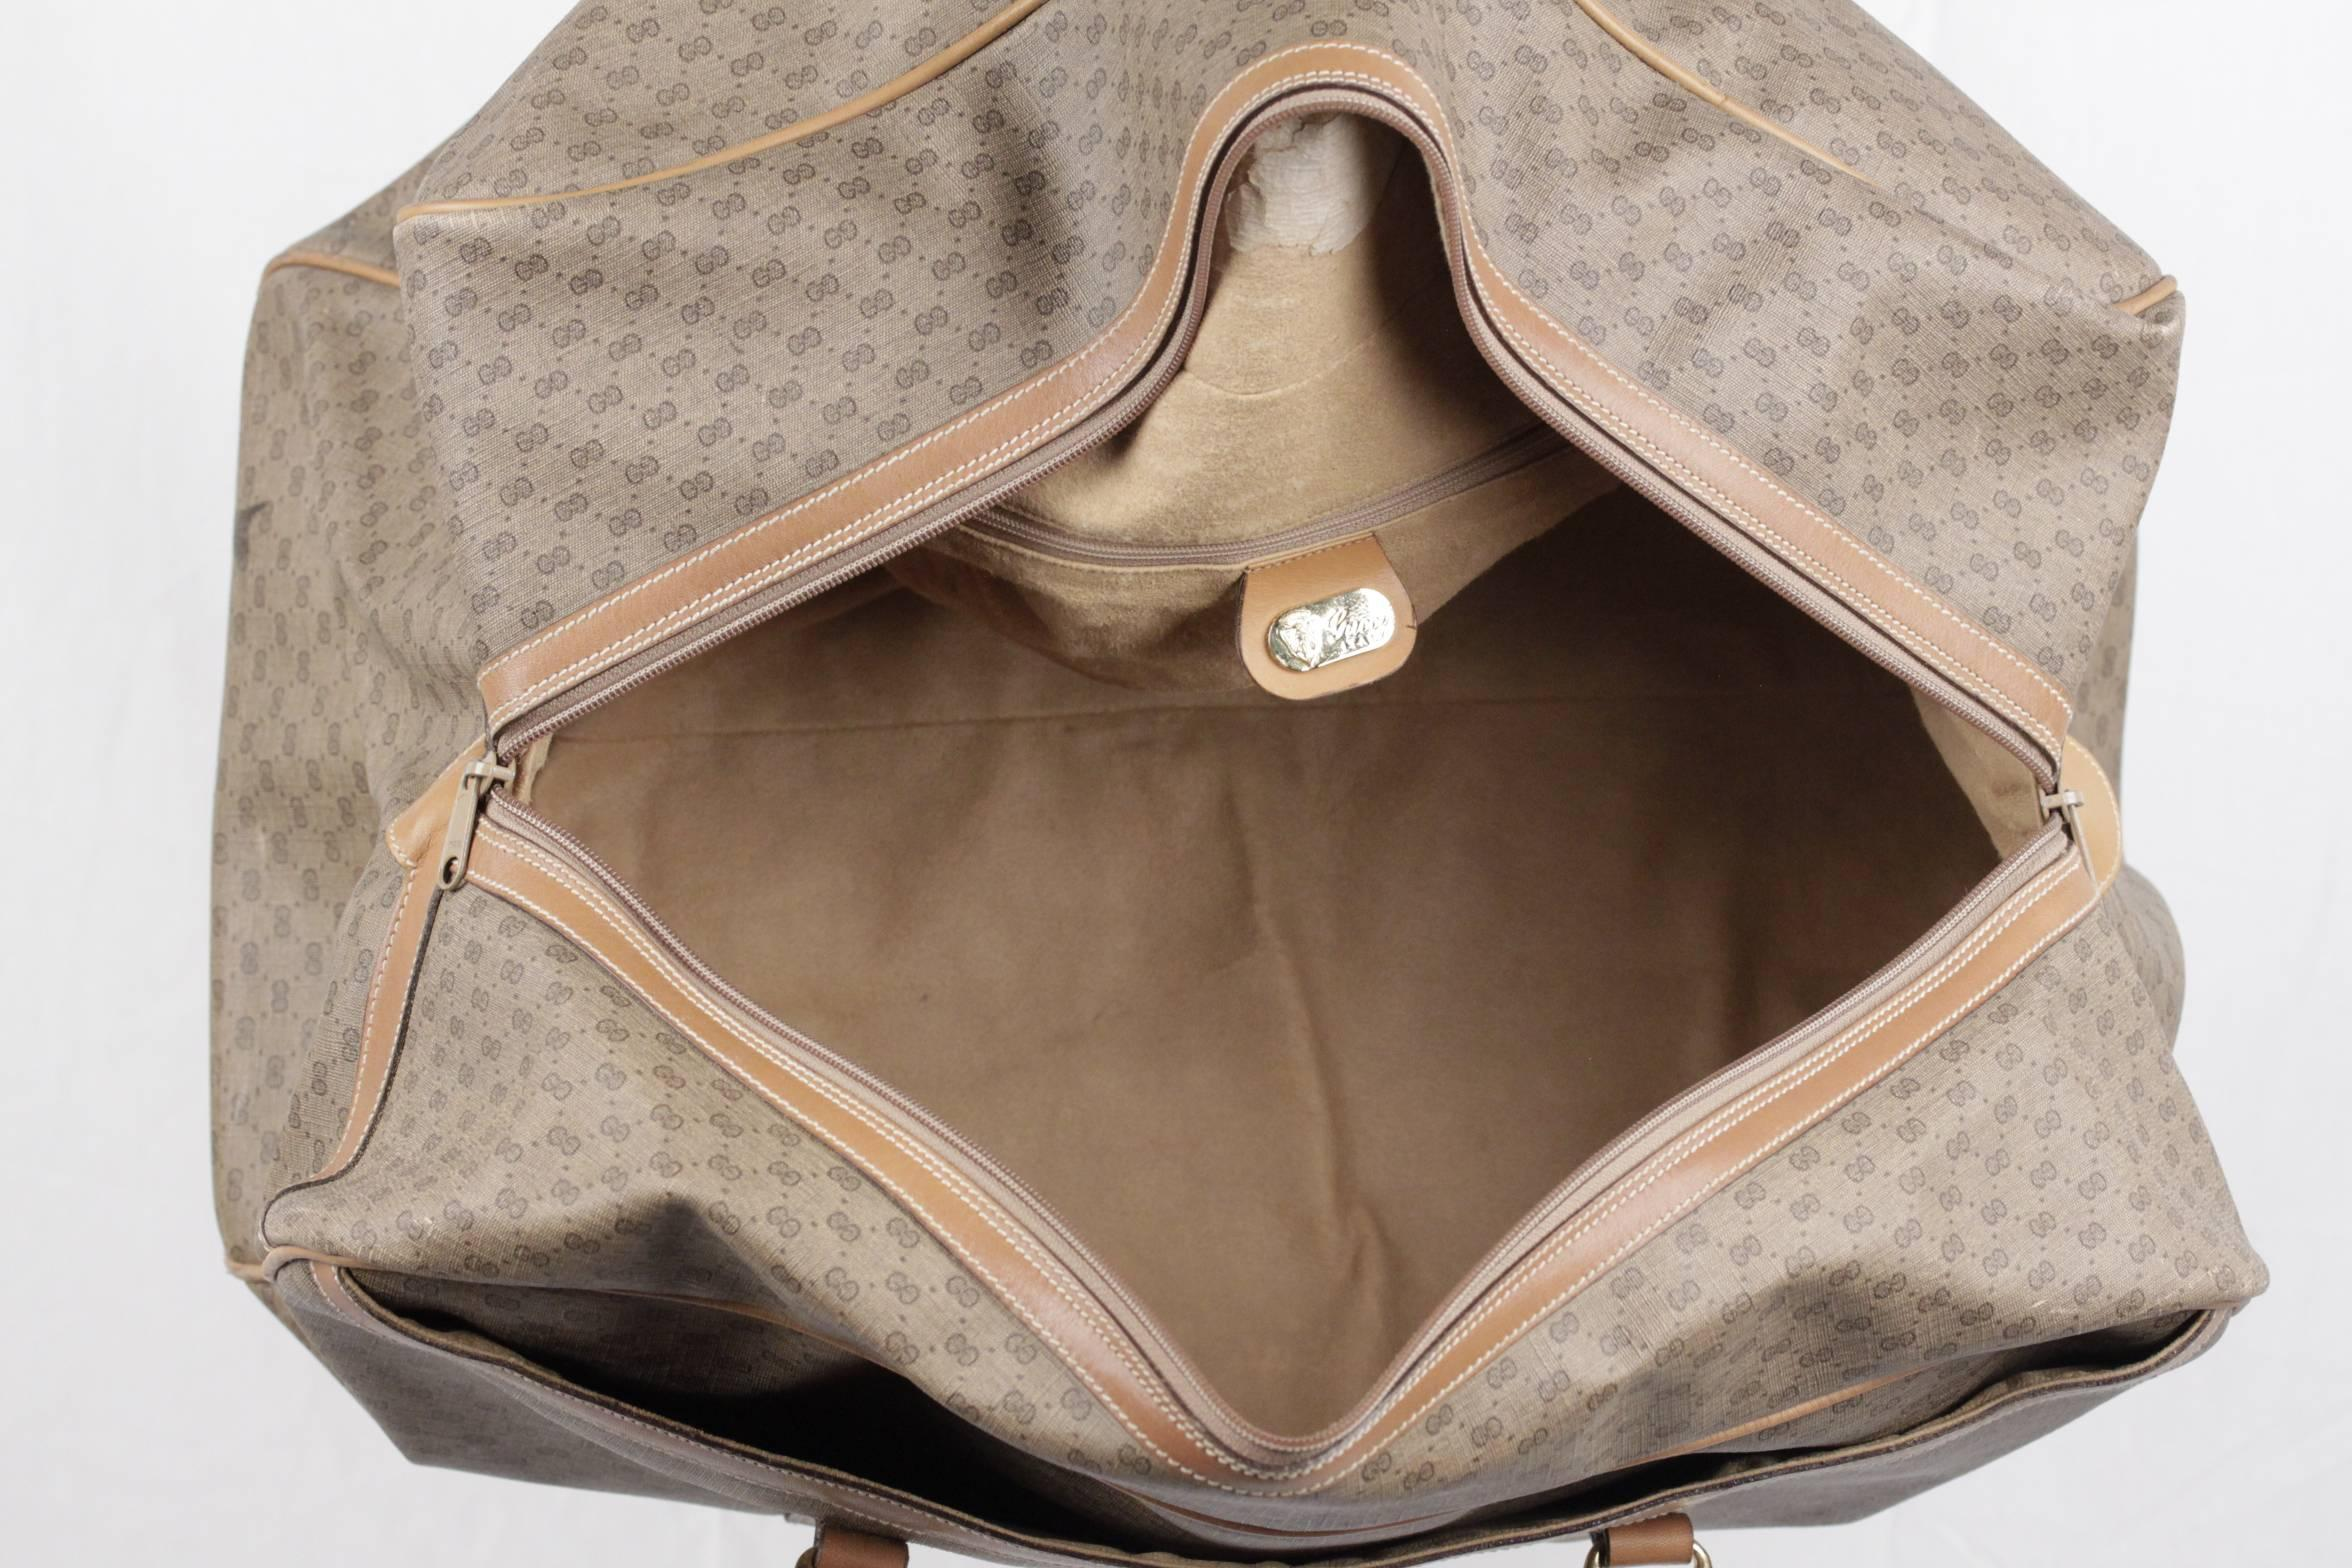 0cd853bae378 GUCCI Vintage Tan GG MONOGRAM Canvas WEEKENDER Travel Bag at 1stdibs